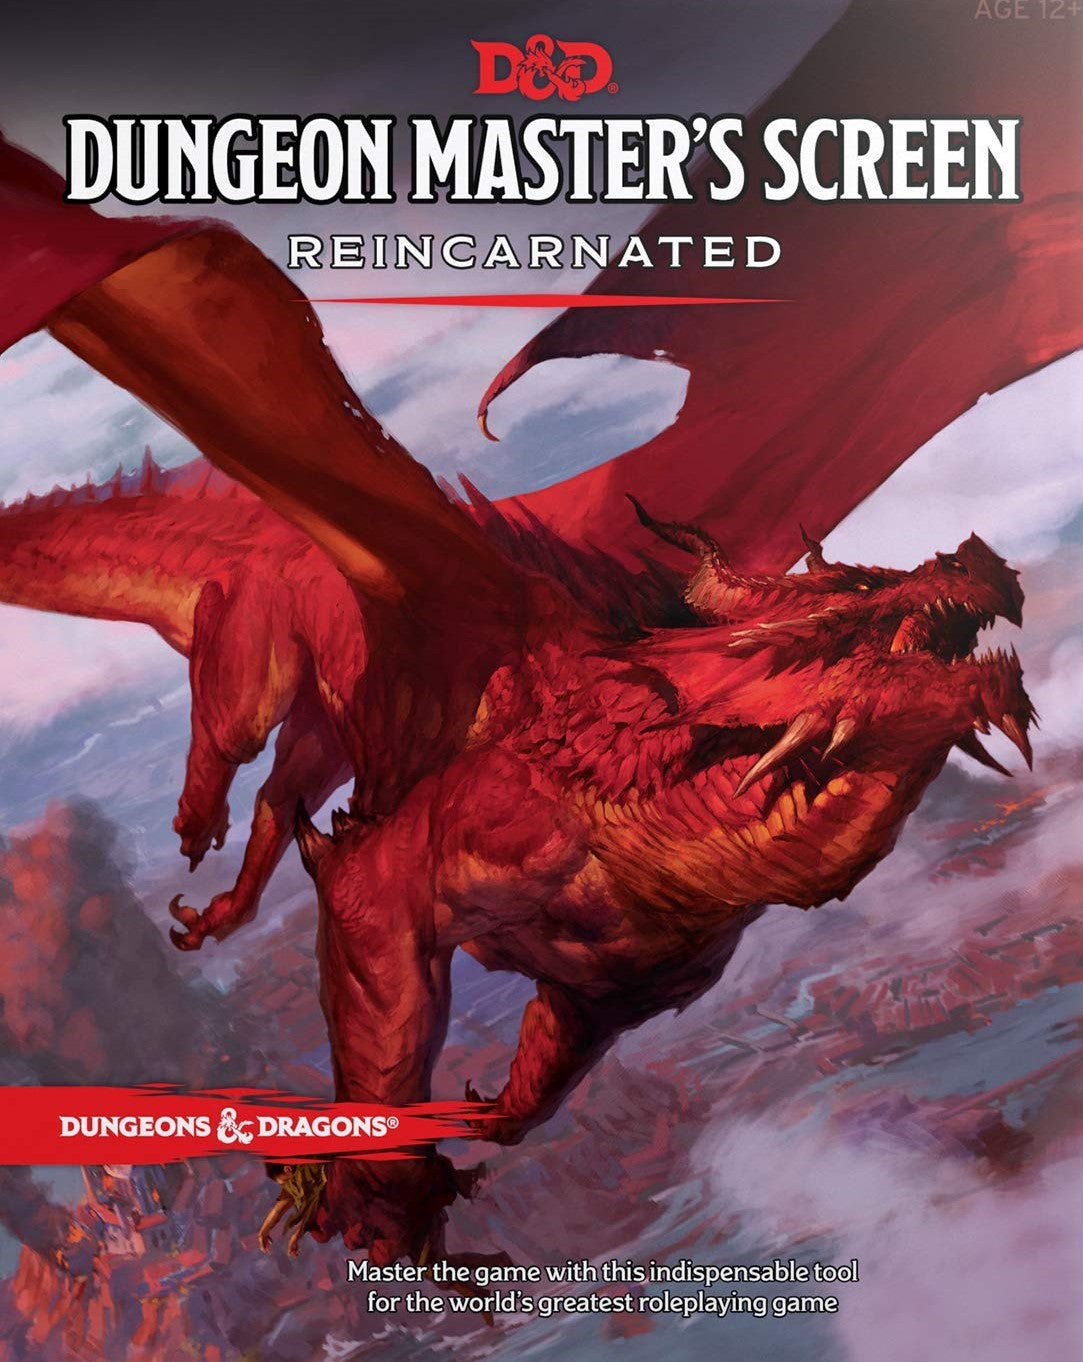 DUNGEONS & DRAGONS: Dungeon Master's Screen Reincarnated 5E